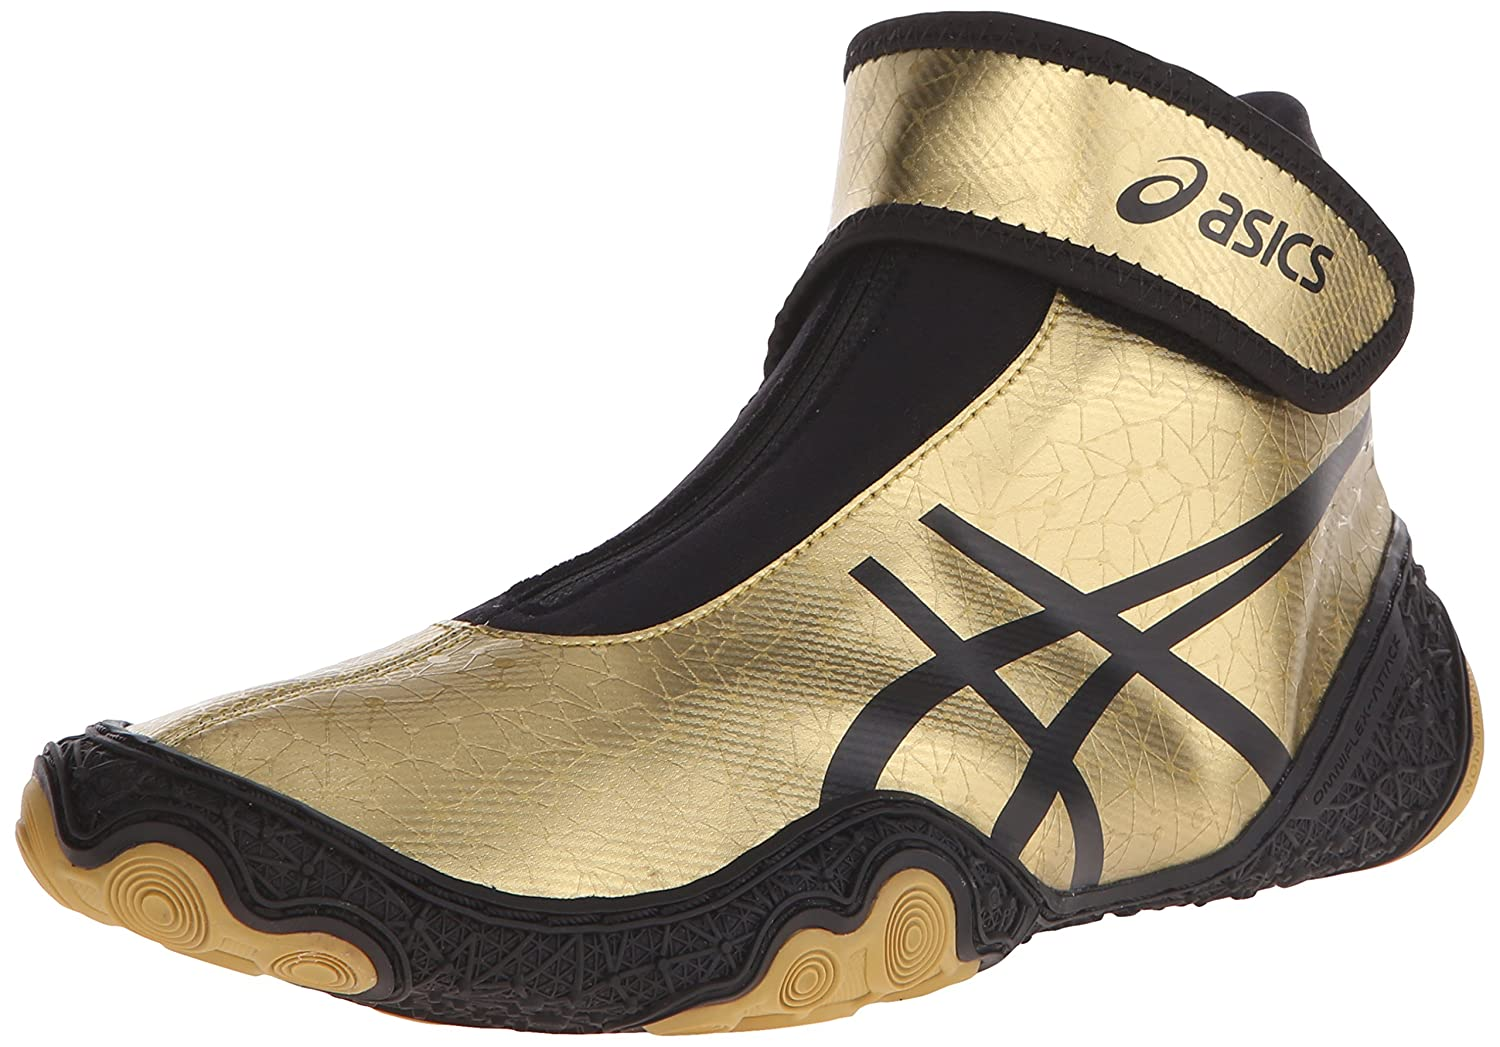 ASICS Men's Omniflex-Attack V2.0 Wrestling Shoe ASICS America Corporation Omniflex-Attack V2.0-M